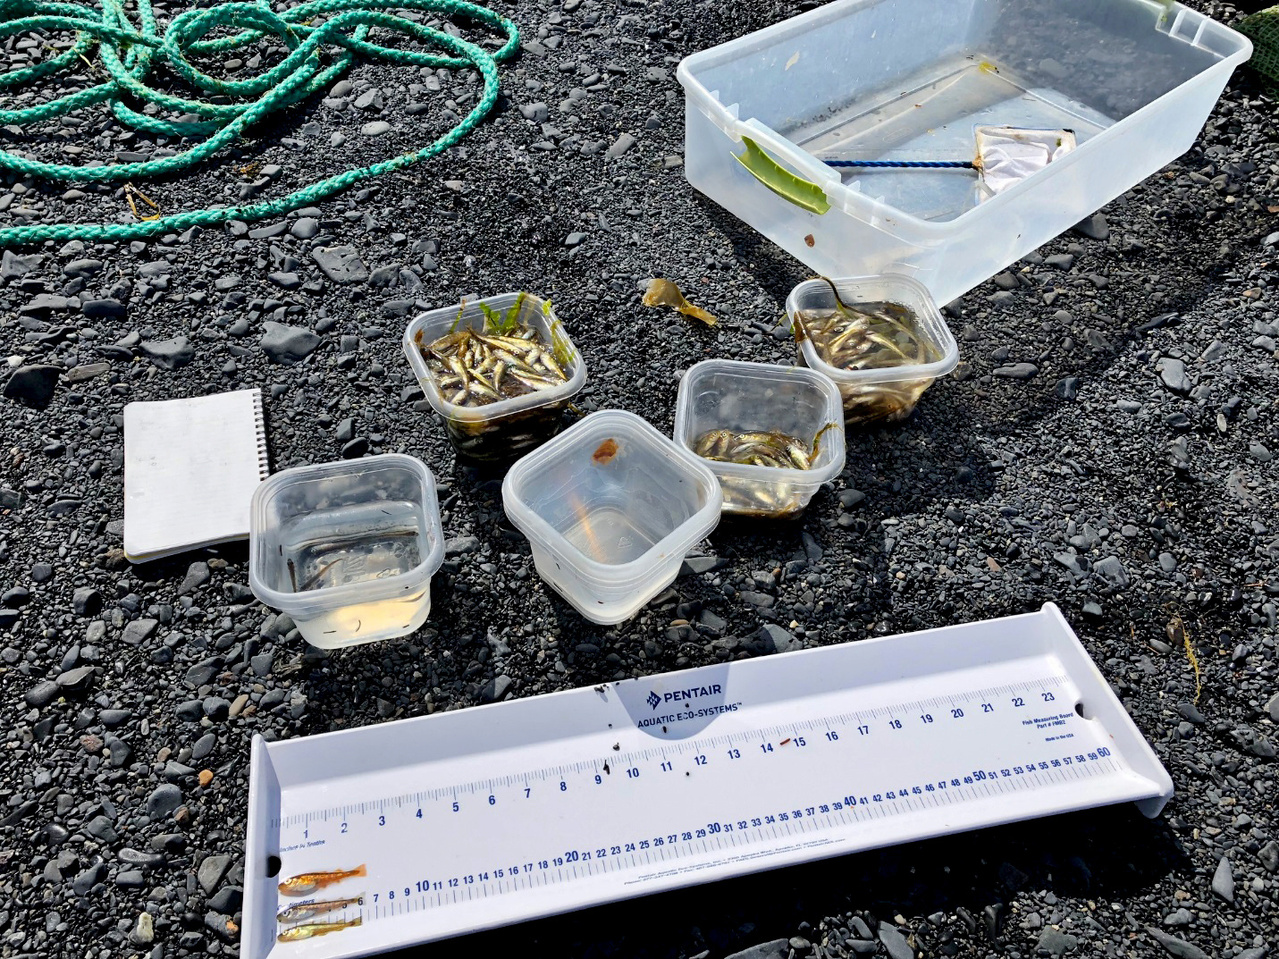 Juvenile fish are identified, sorted, counted and then measured.